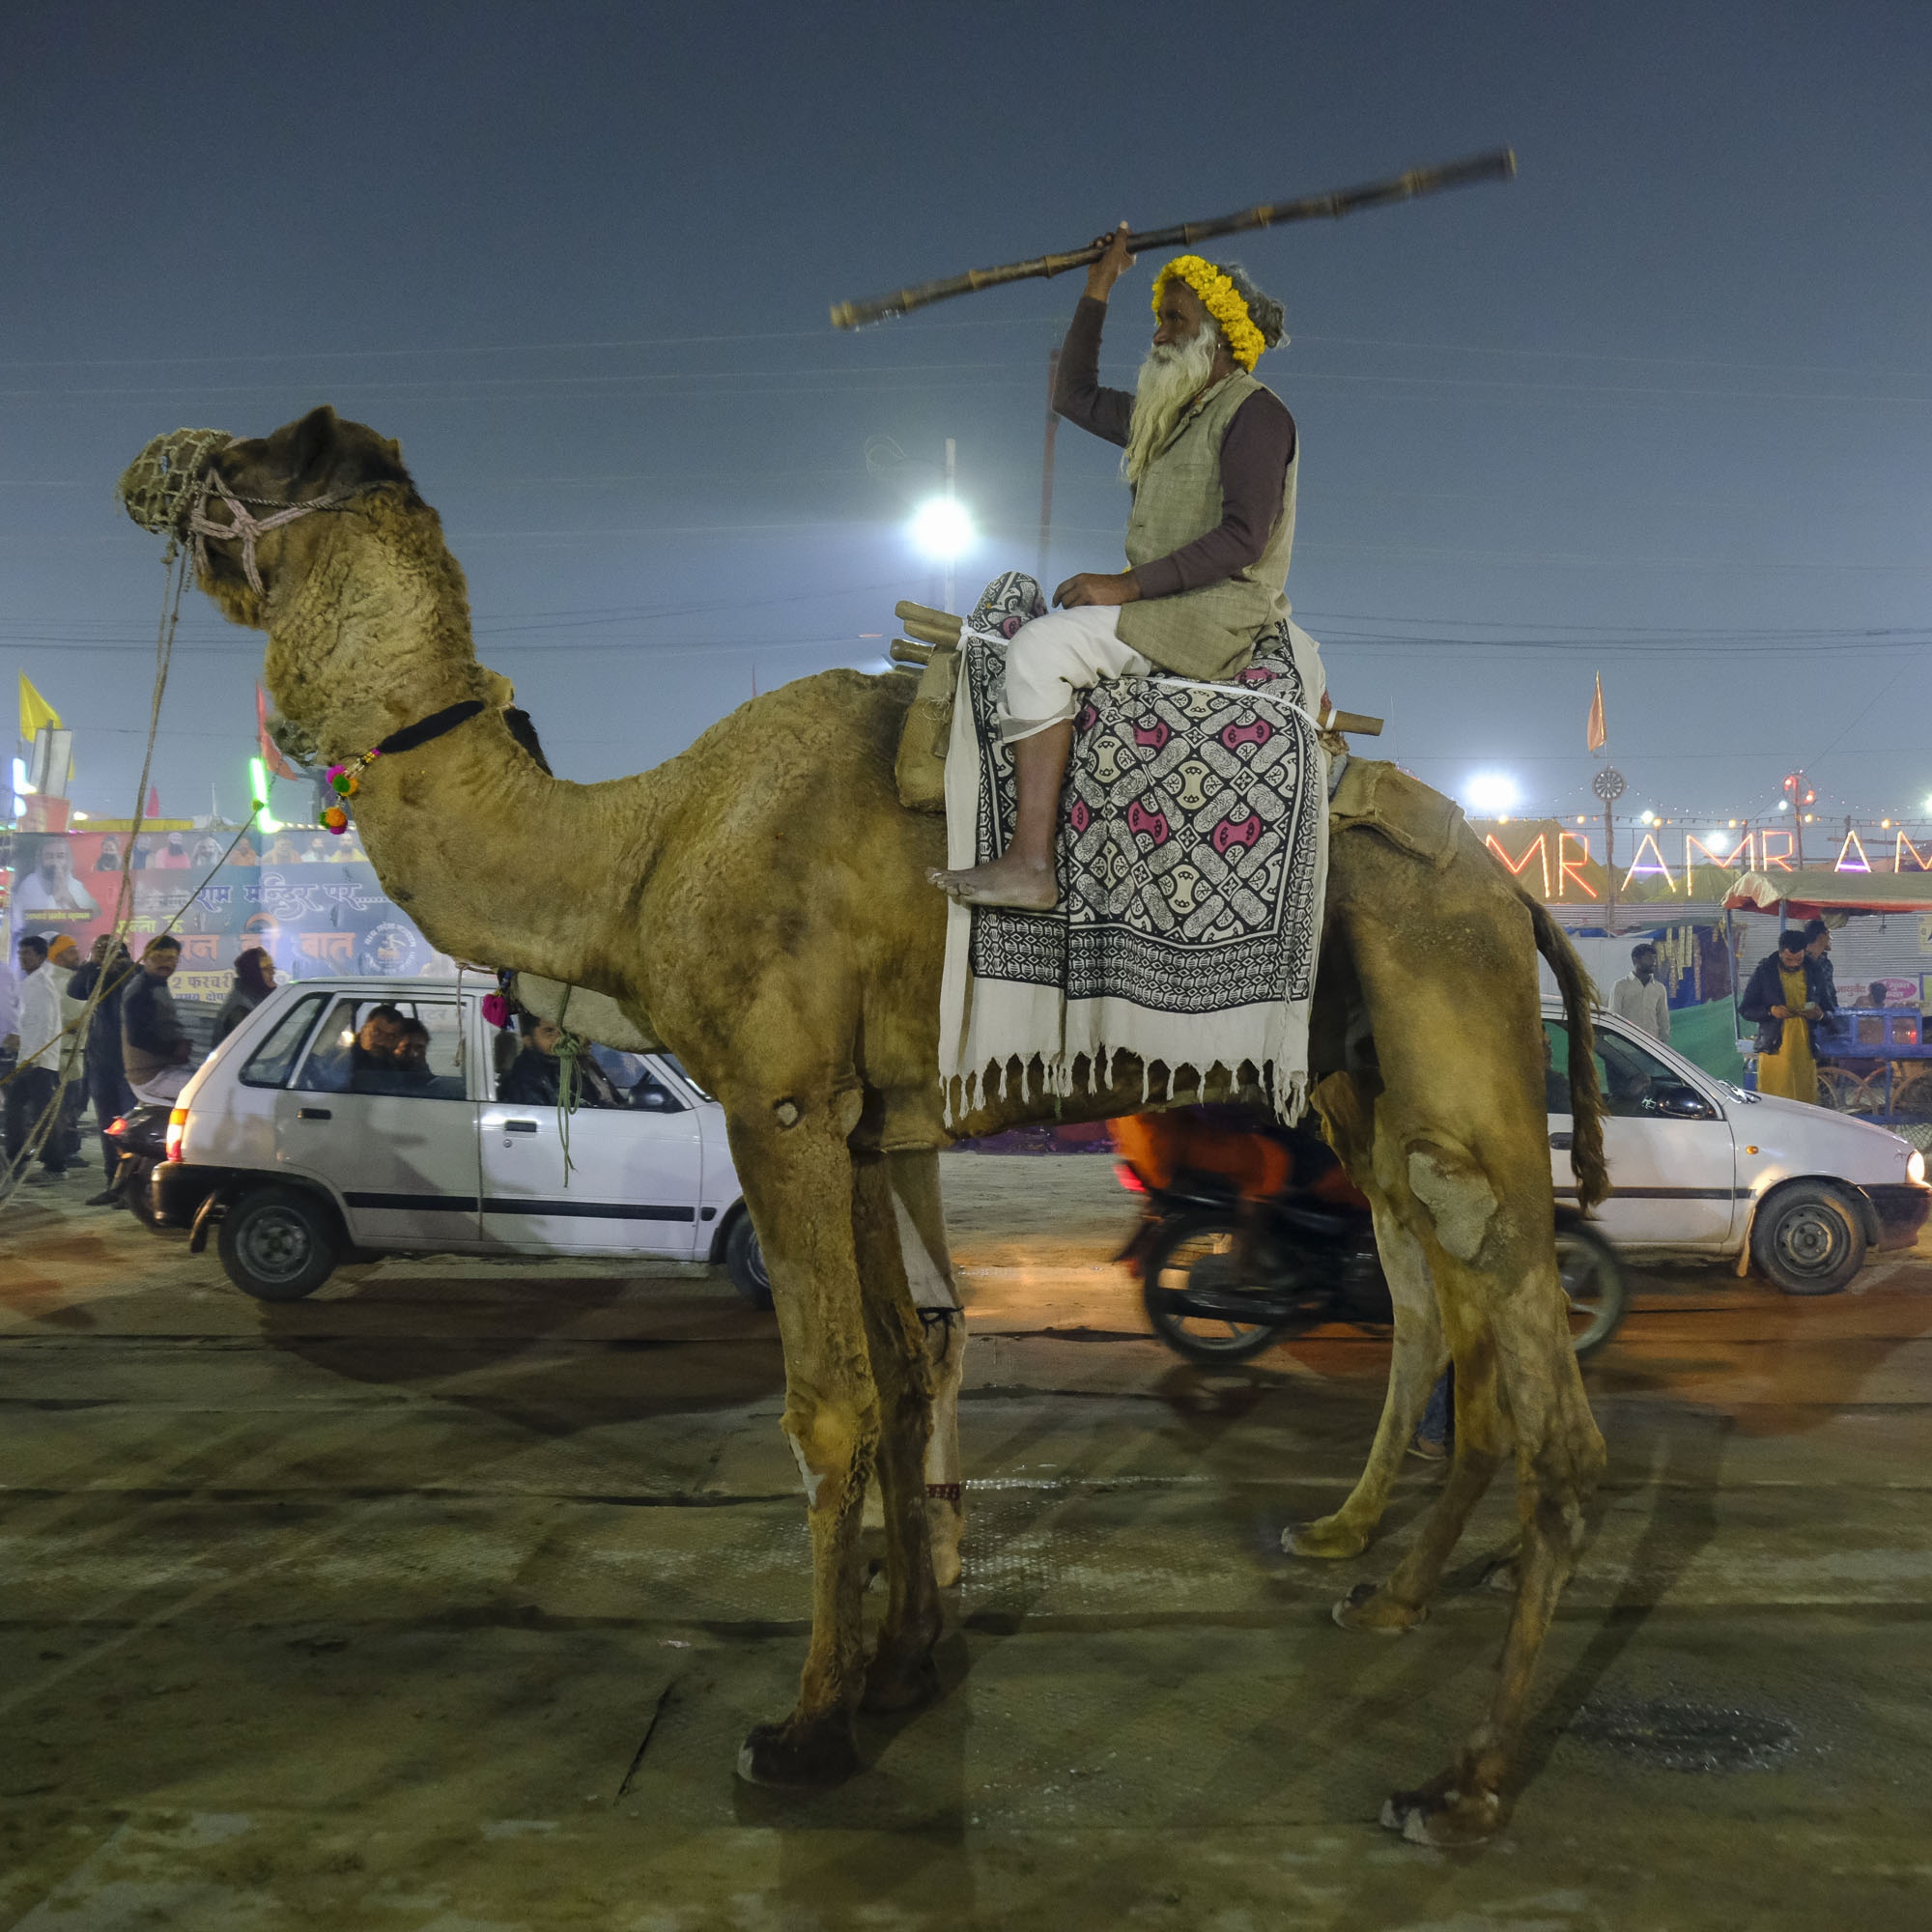 camel show night pilgrims Kumbh mela 2019 India Allahabad Prayagraj Ardh hindu religious Festival event rivers photographer jose jeuland photography